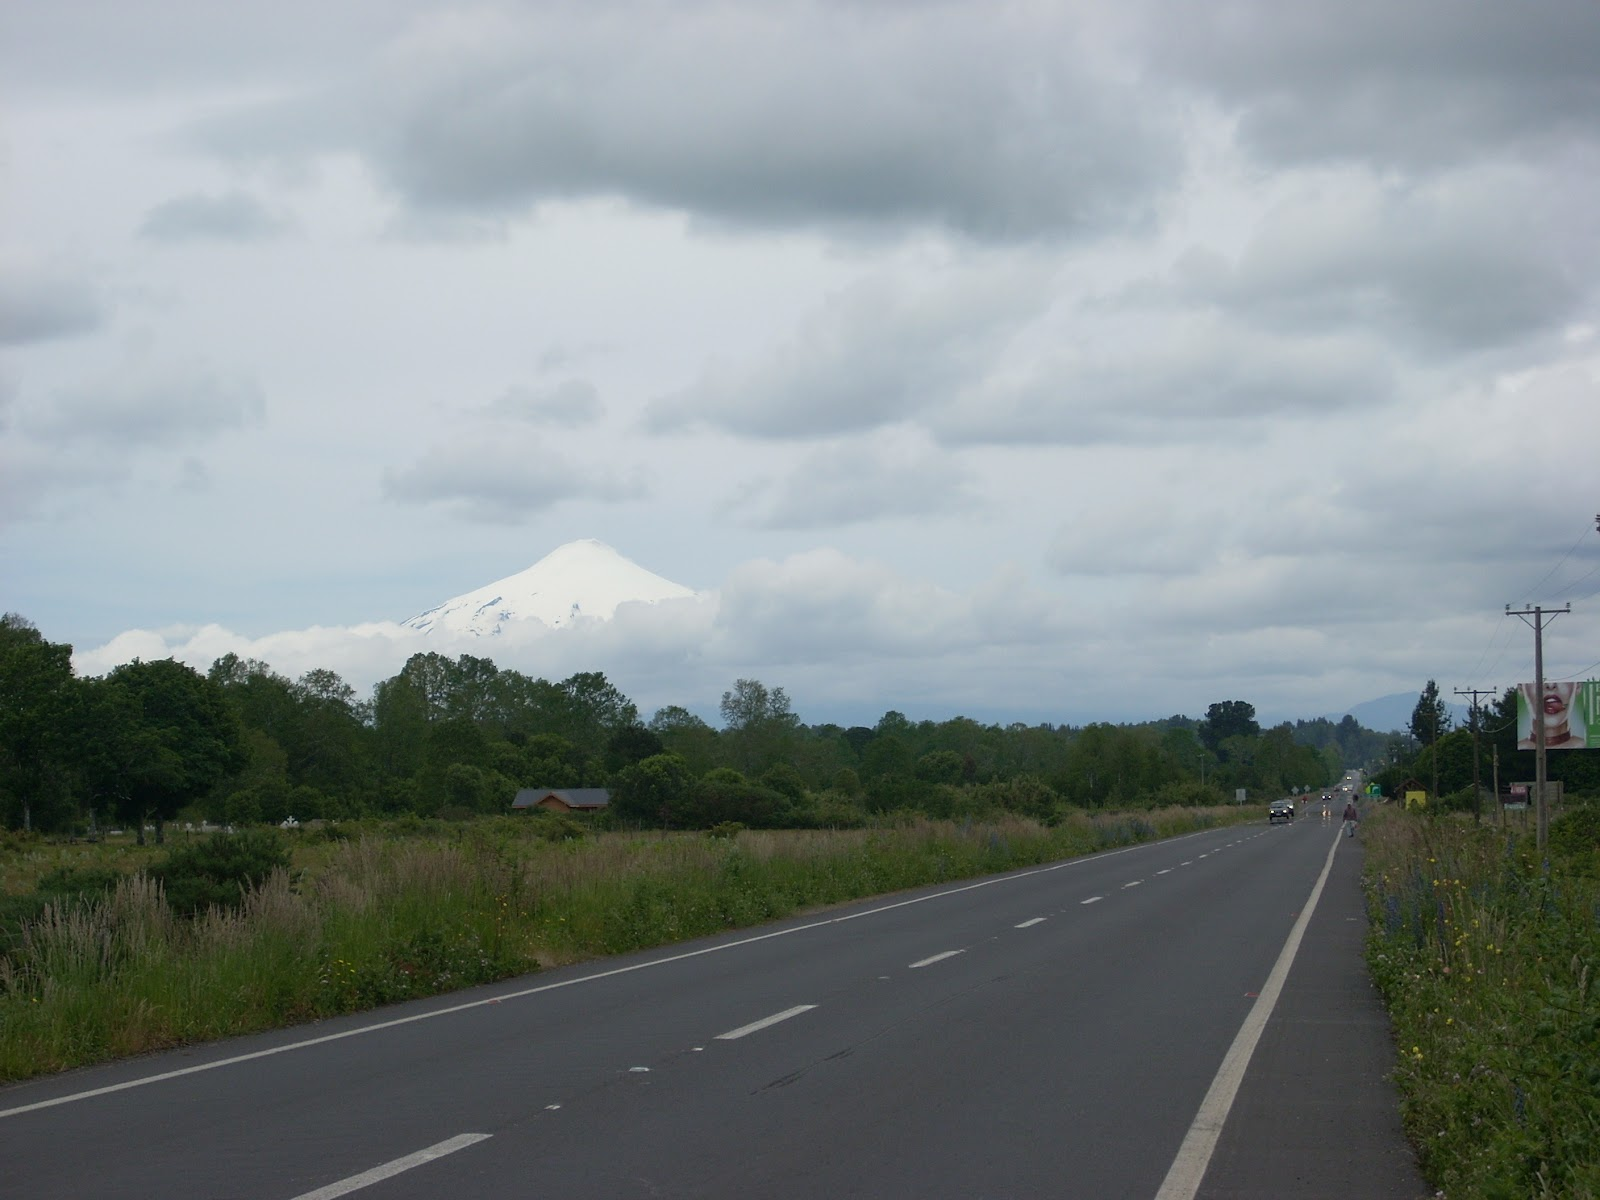 And onto this road. The last day of easy riding. Note the smooth shoulder. This will all just be a dream soon. The volcano is peeking through in the distance